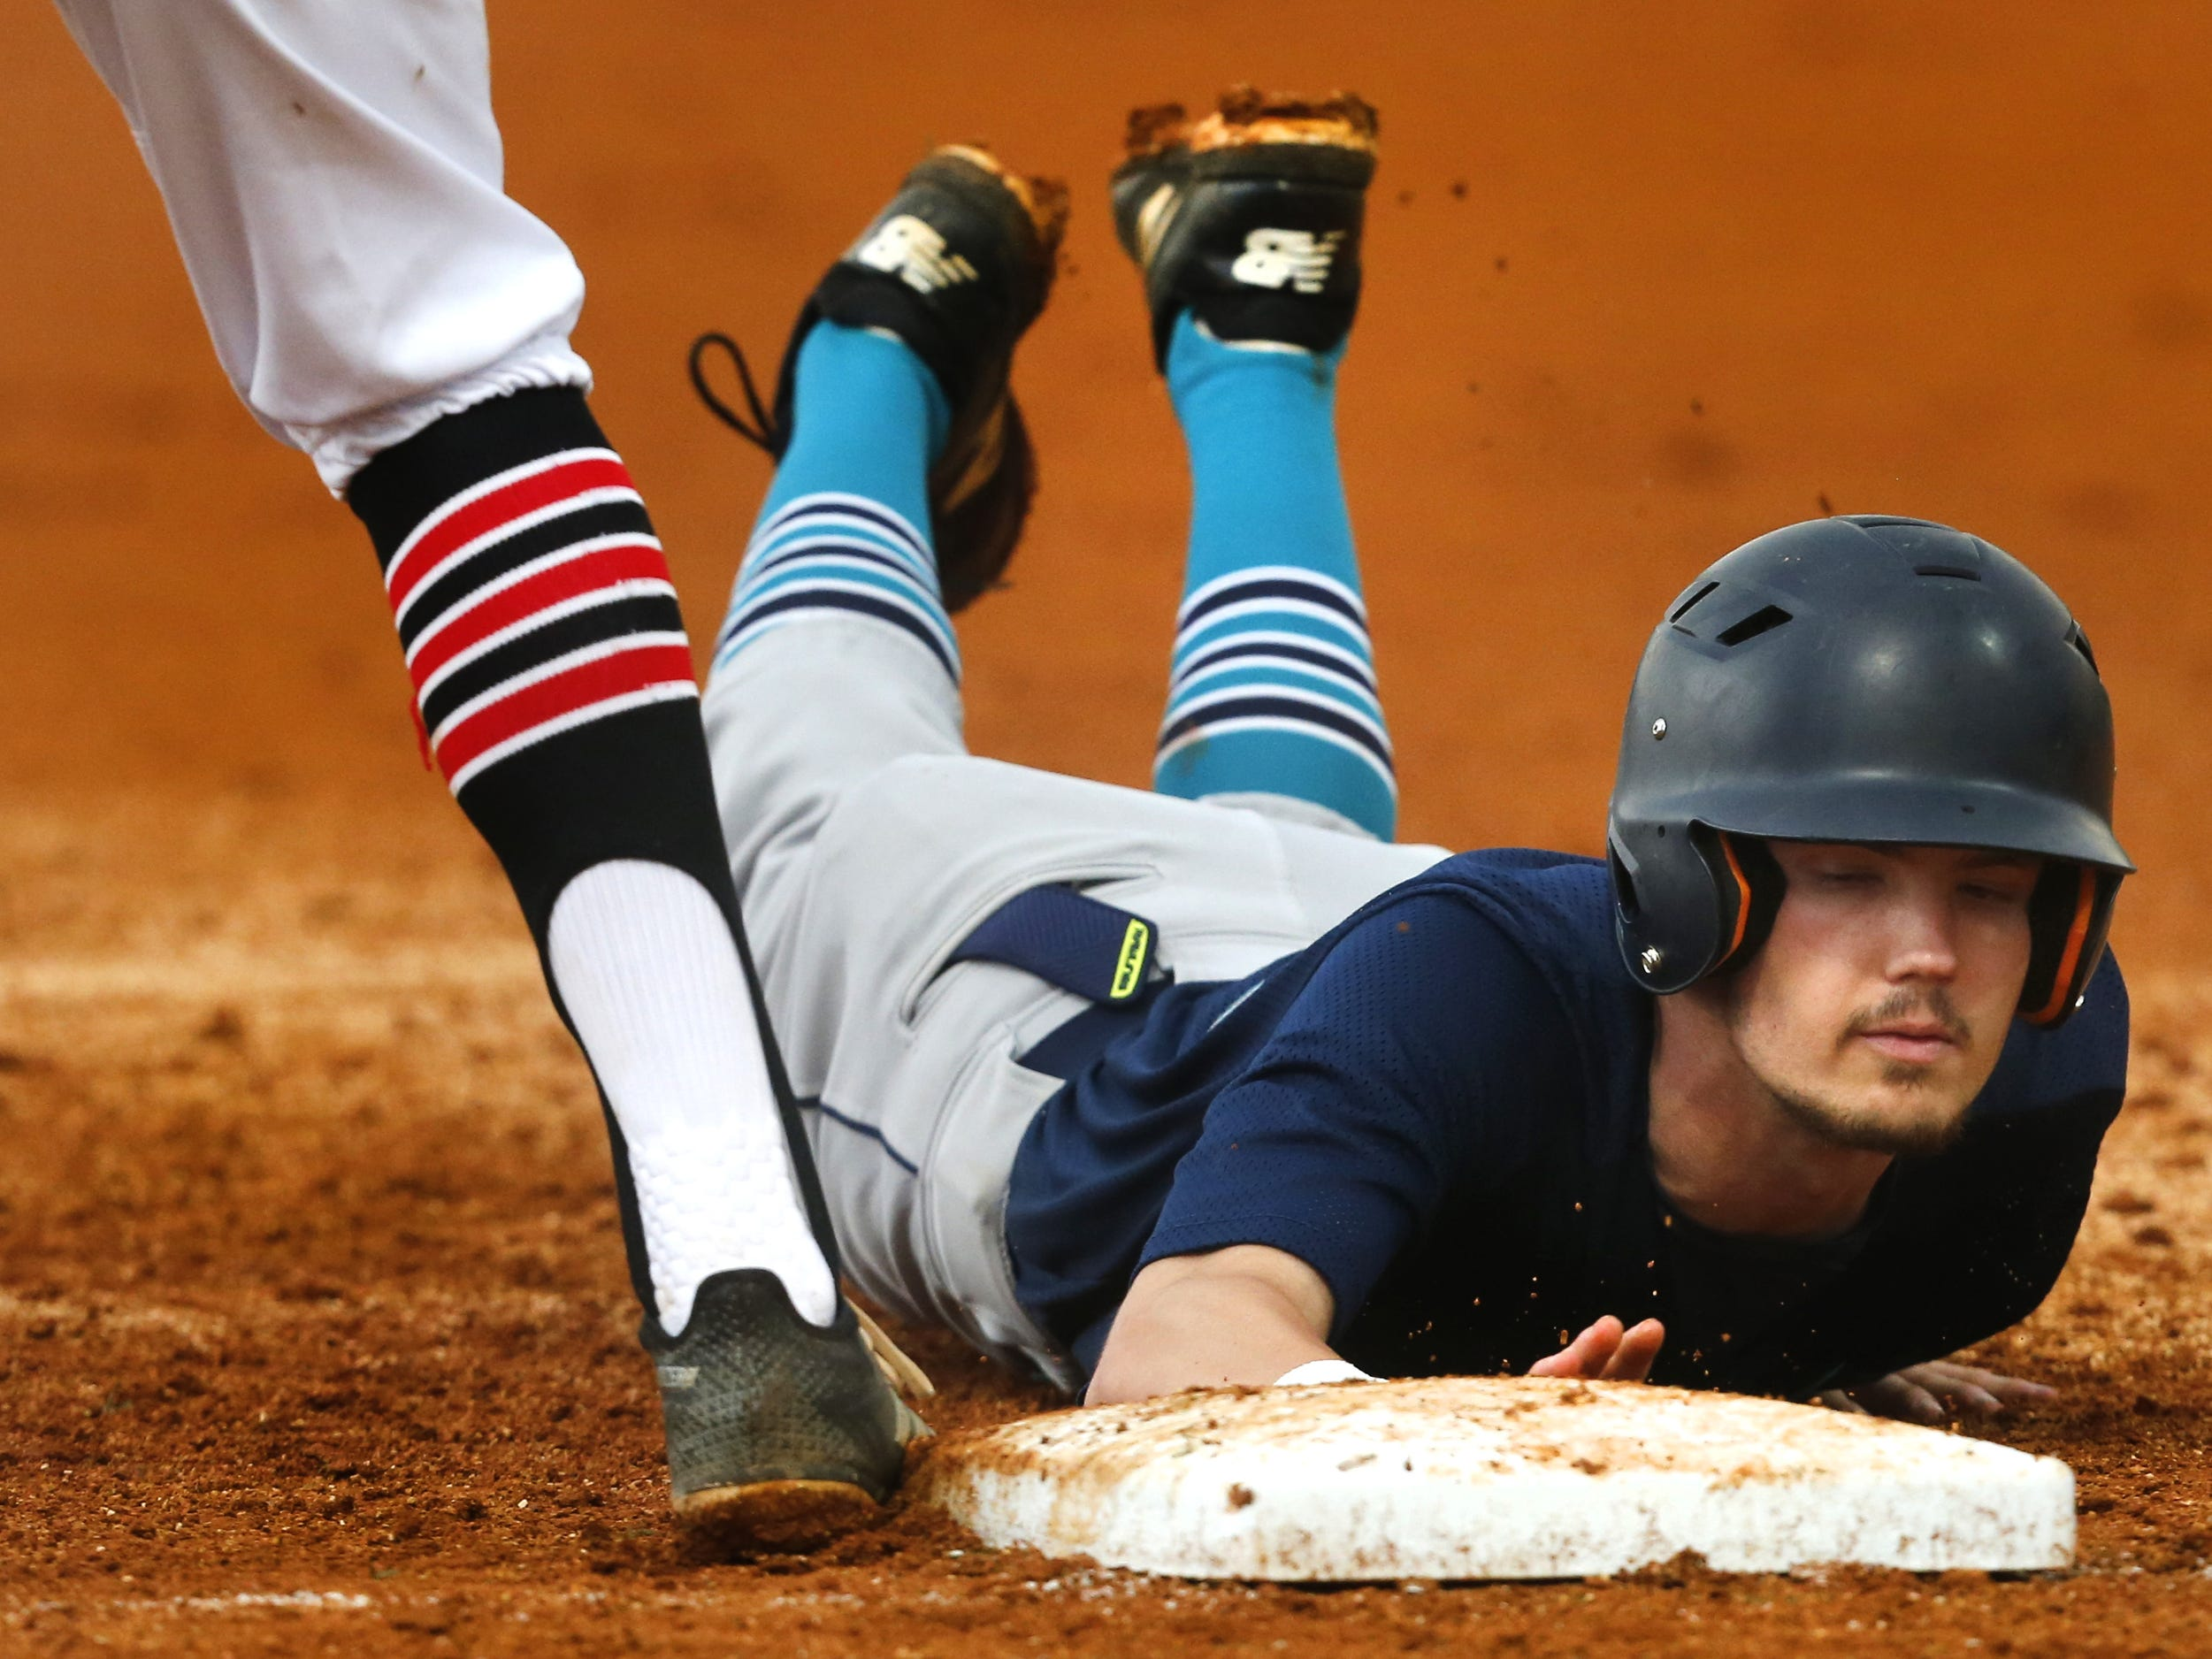 Siegel's Zach Bondurant (26) dives back to first base during the game against Stewarts Creek in the Region 4-AAA baseball title game on Tuesday, May 15, 2018, at Stewarts Creek.